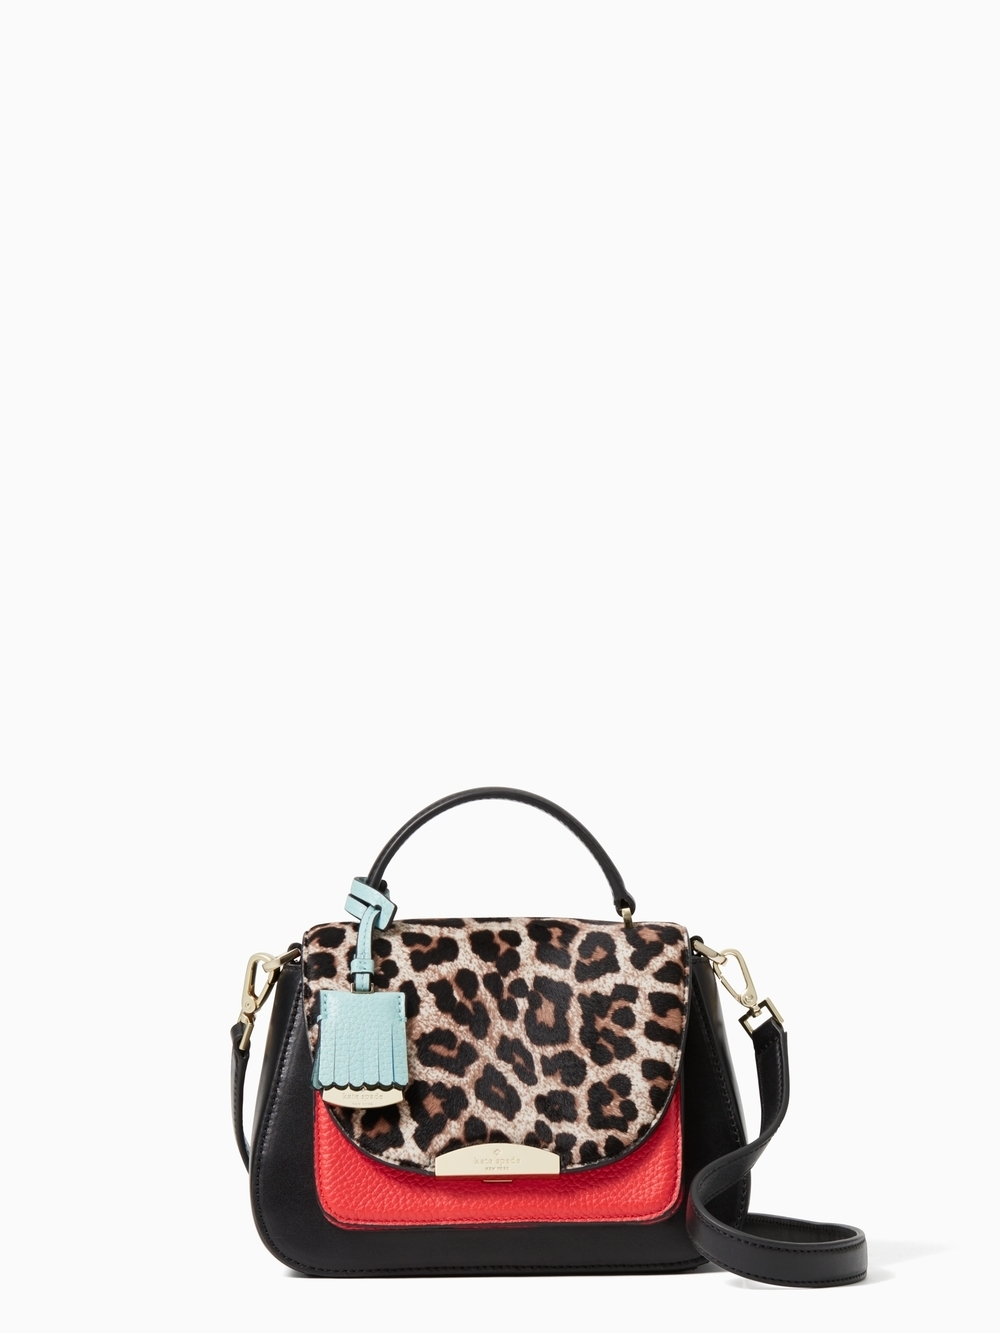 Kate Spade(ケイト・スペード) PINE GROVE WAY LUXE SMALL ALEXYA.jpg